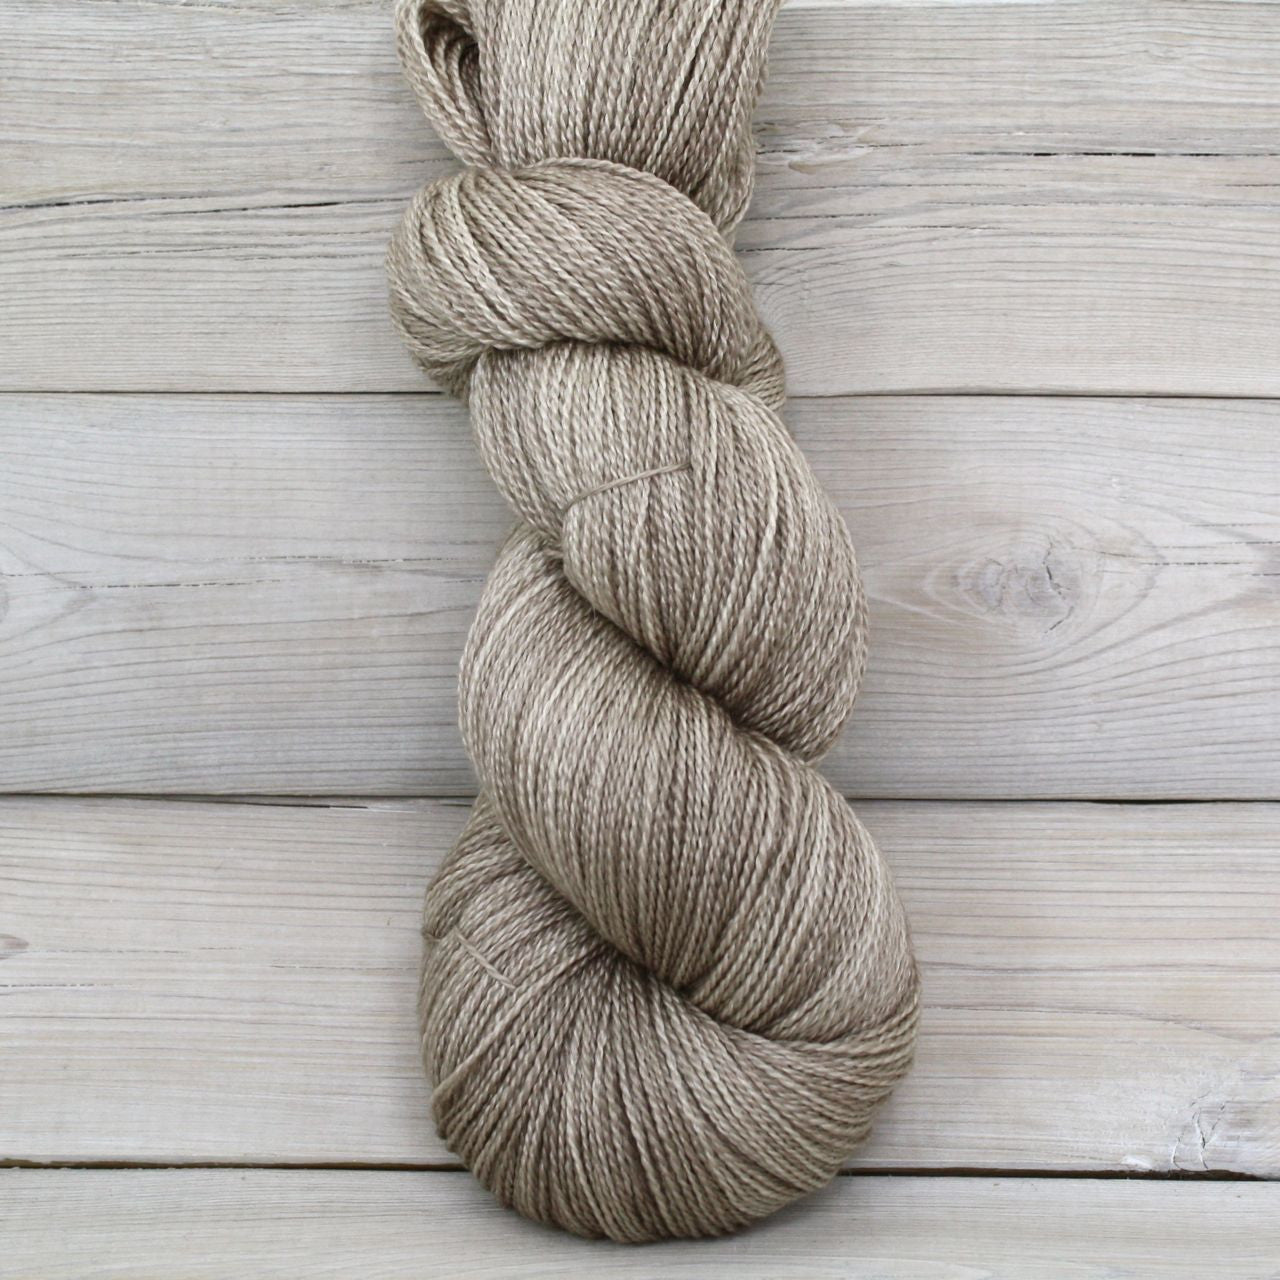 Starbright Yarn | Colorway: Oatmeal